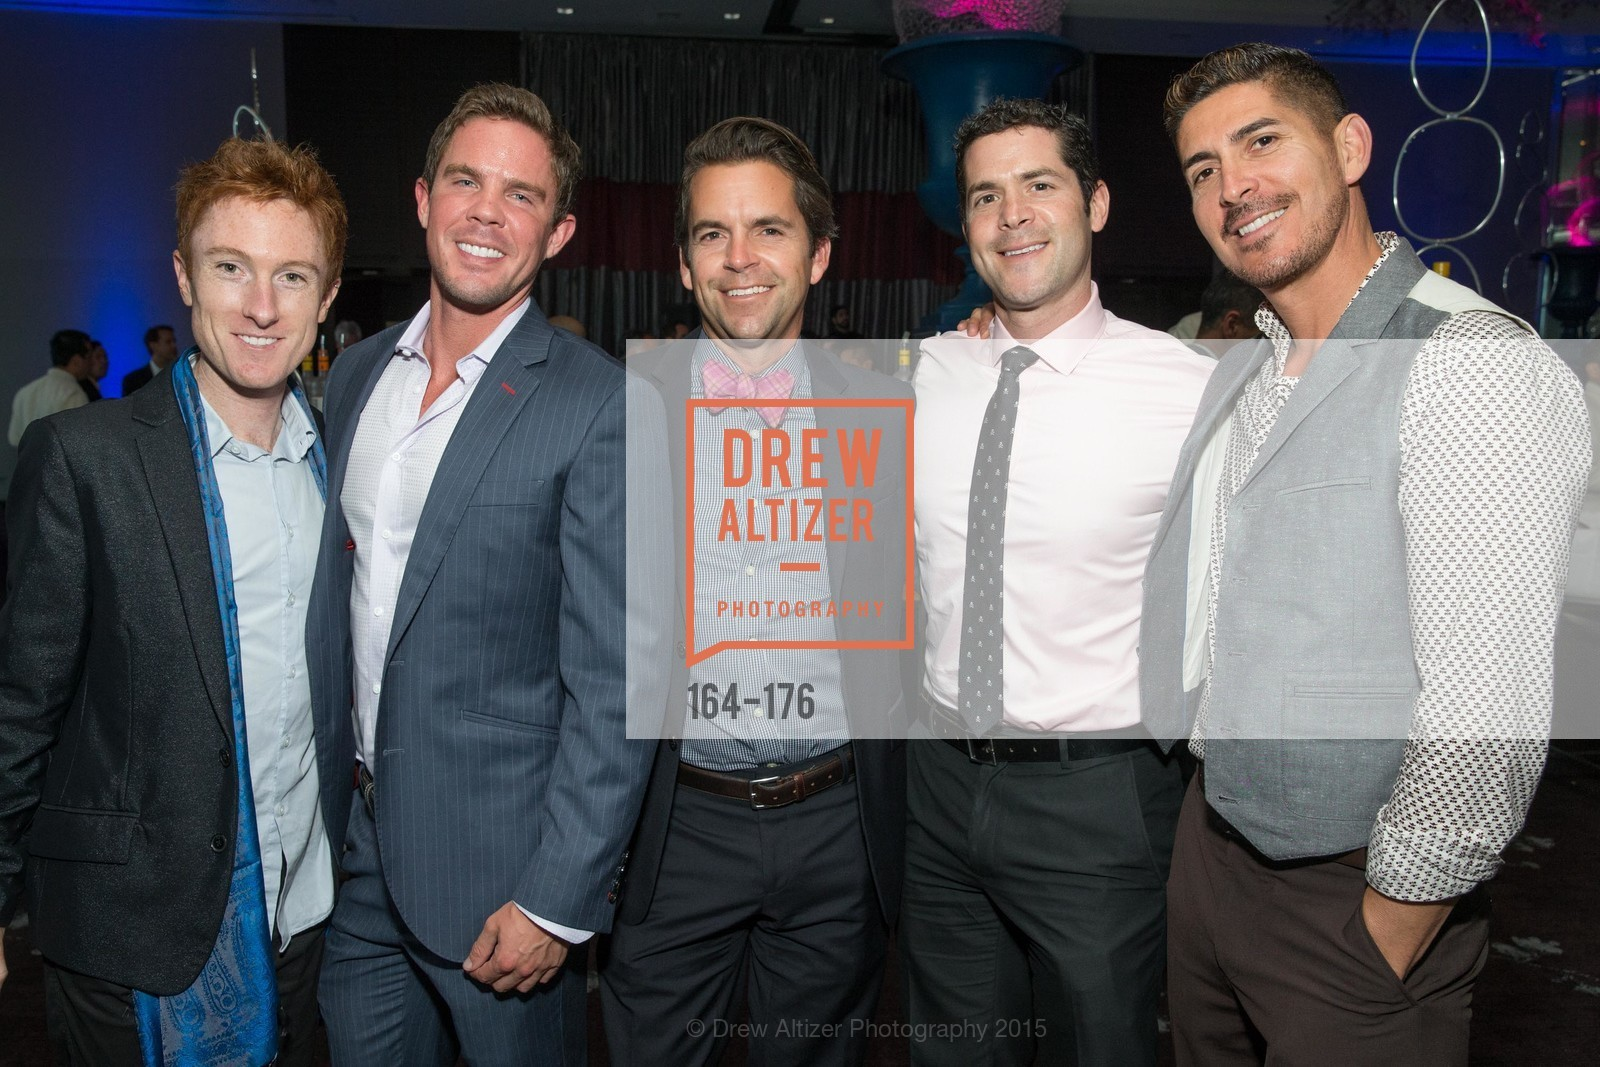 Brad Sullivan, Philip Hutches, Robert Pinnix, Charles Bello, Ernesto Peralta, VIP Pride Celebration 2015, St. Regis, June 18th, 2015,Drew Altizer, Drew Altizer Photography, full-service agency, private events, San Francisco photographer, photographer california